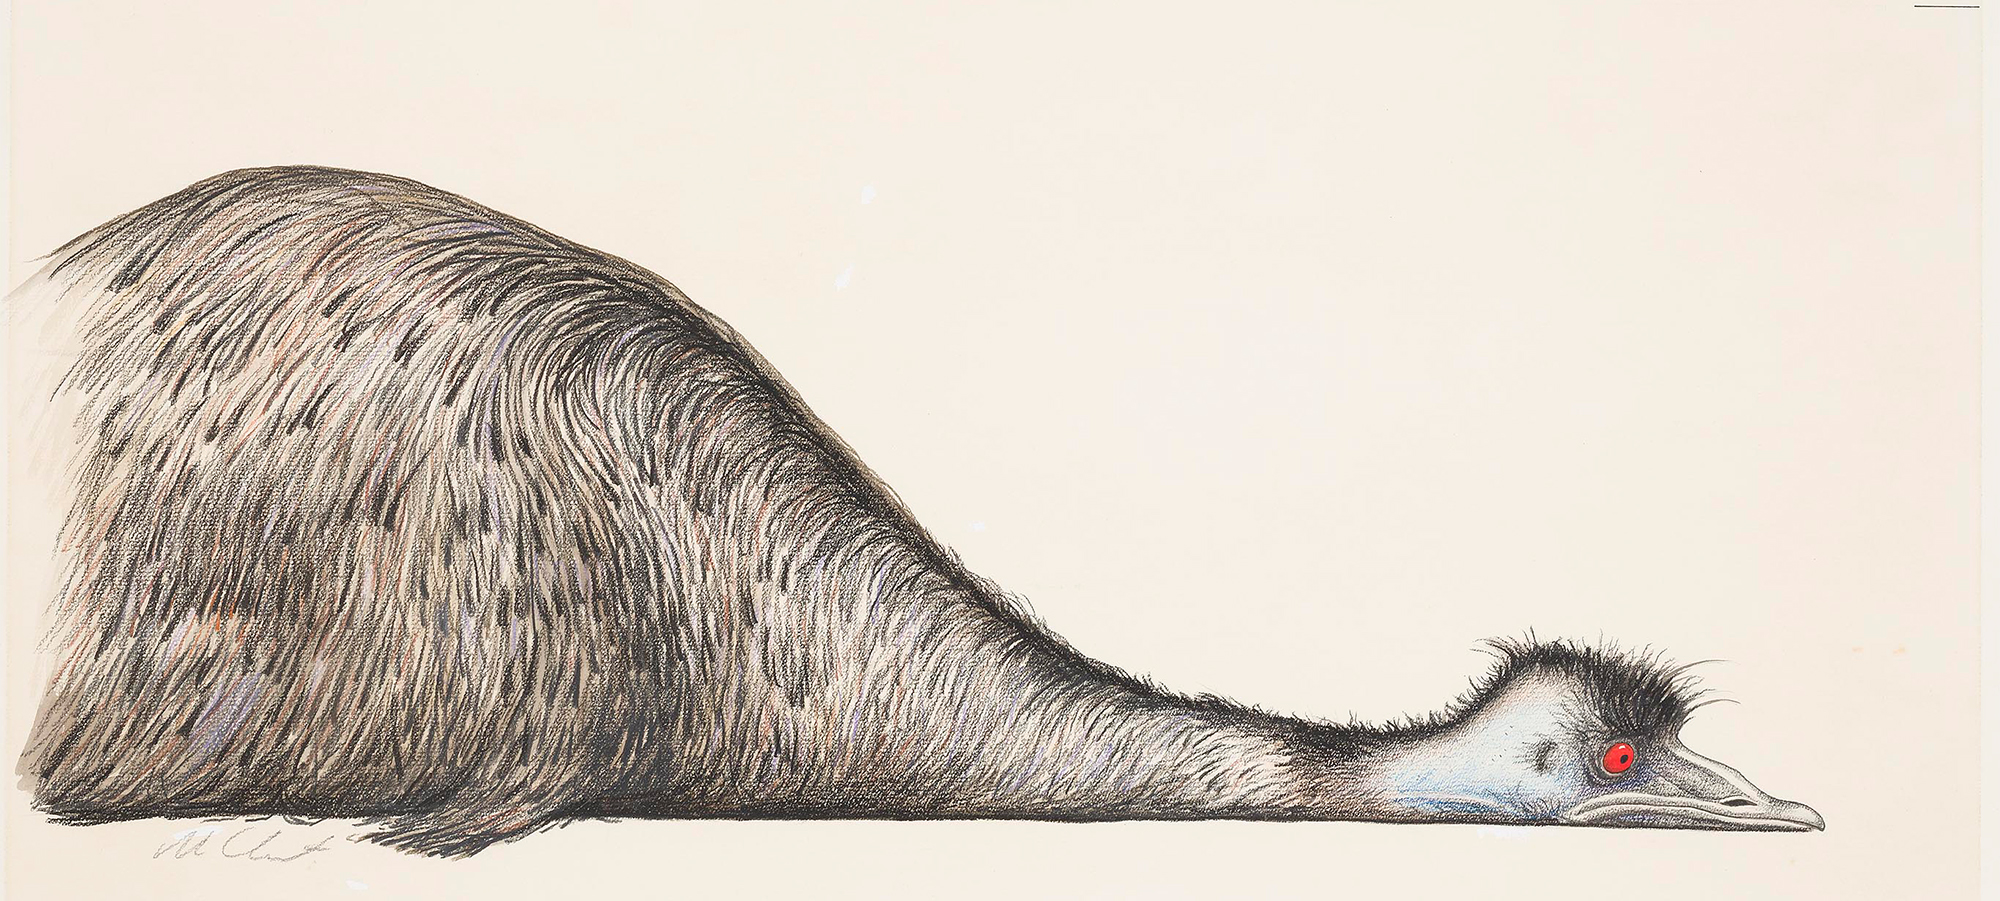 A drawing of an emu lying on the ground.